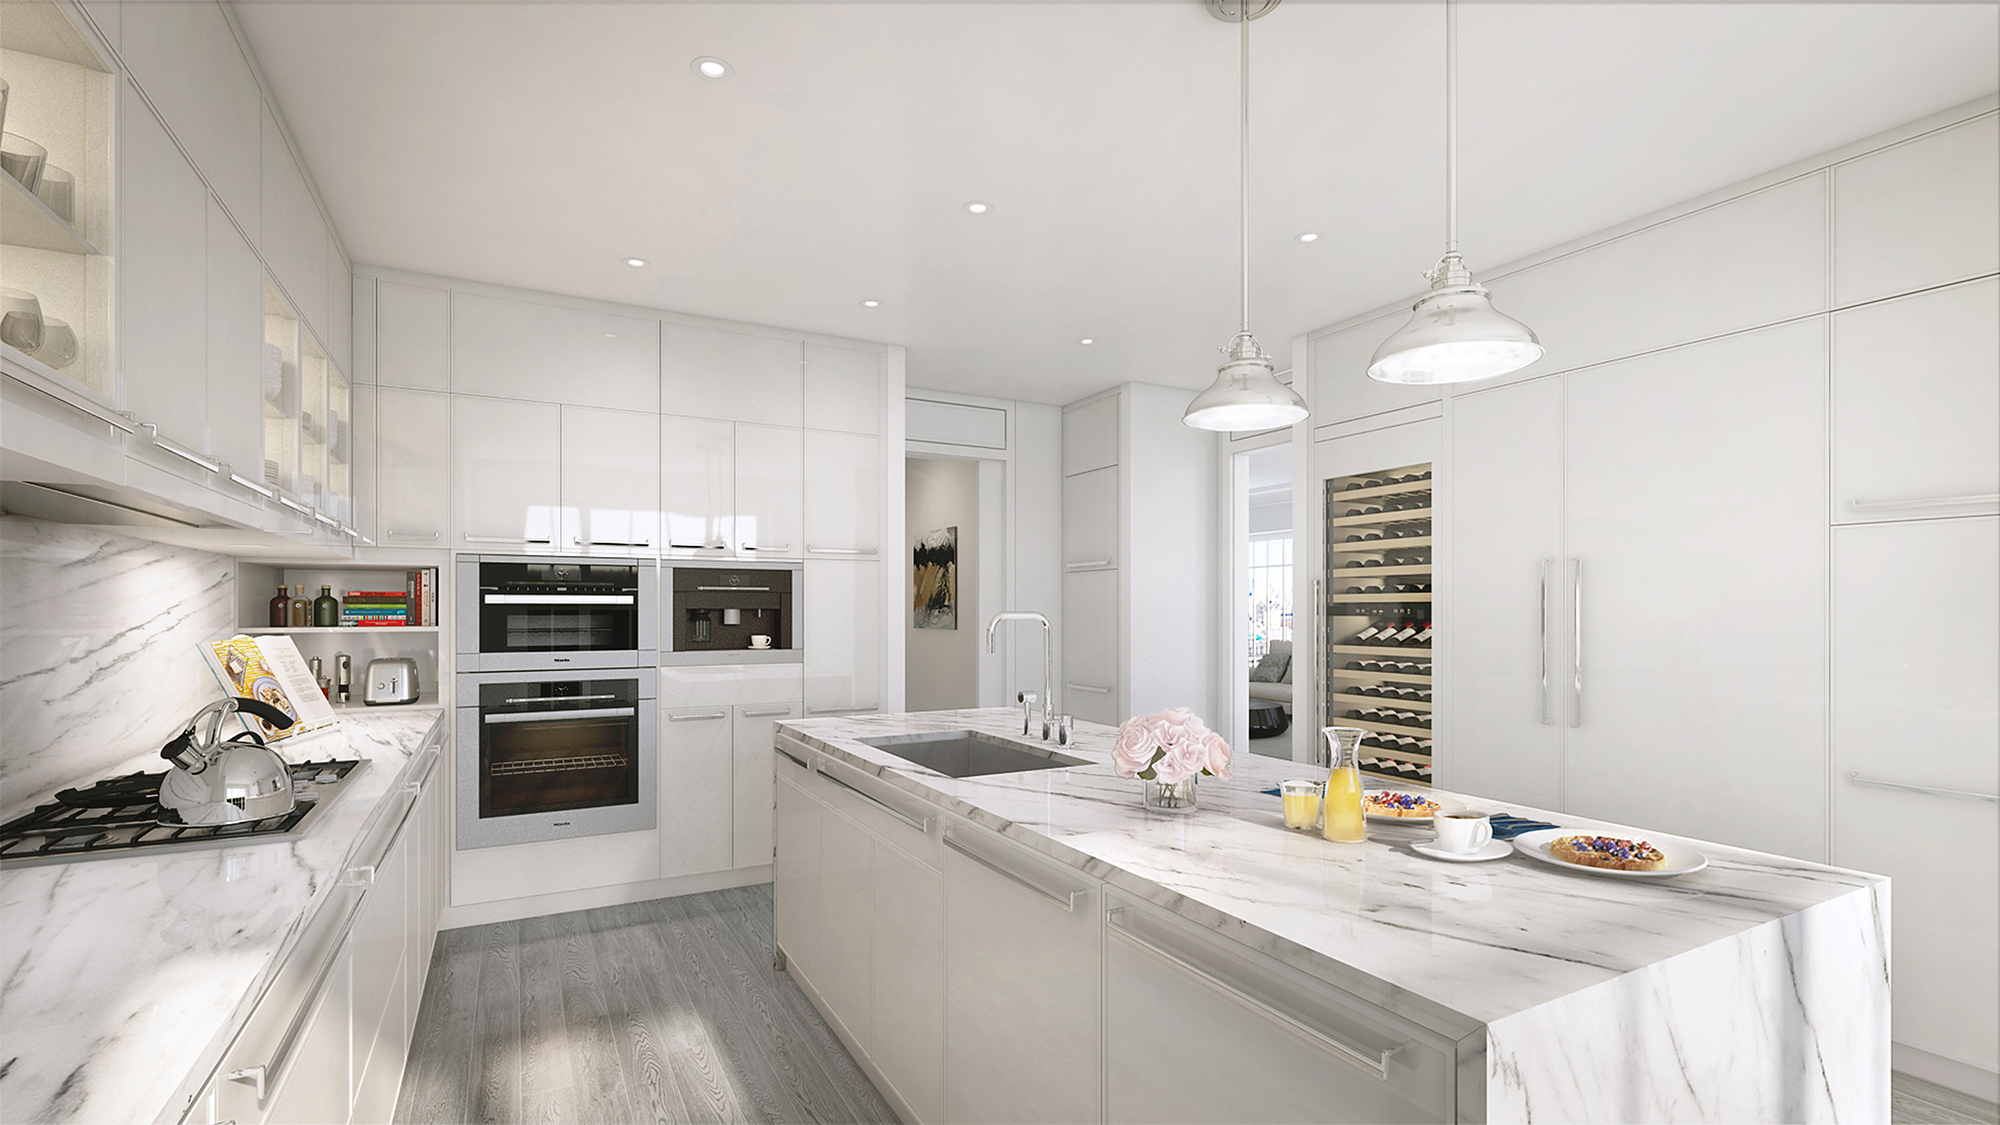 Rendering of a kitchen at The Kent, 200 East 95th Street